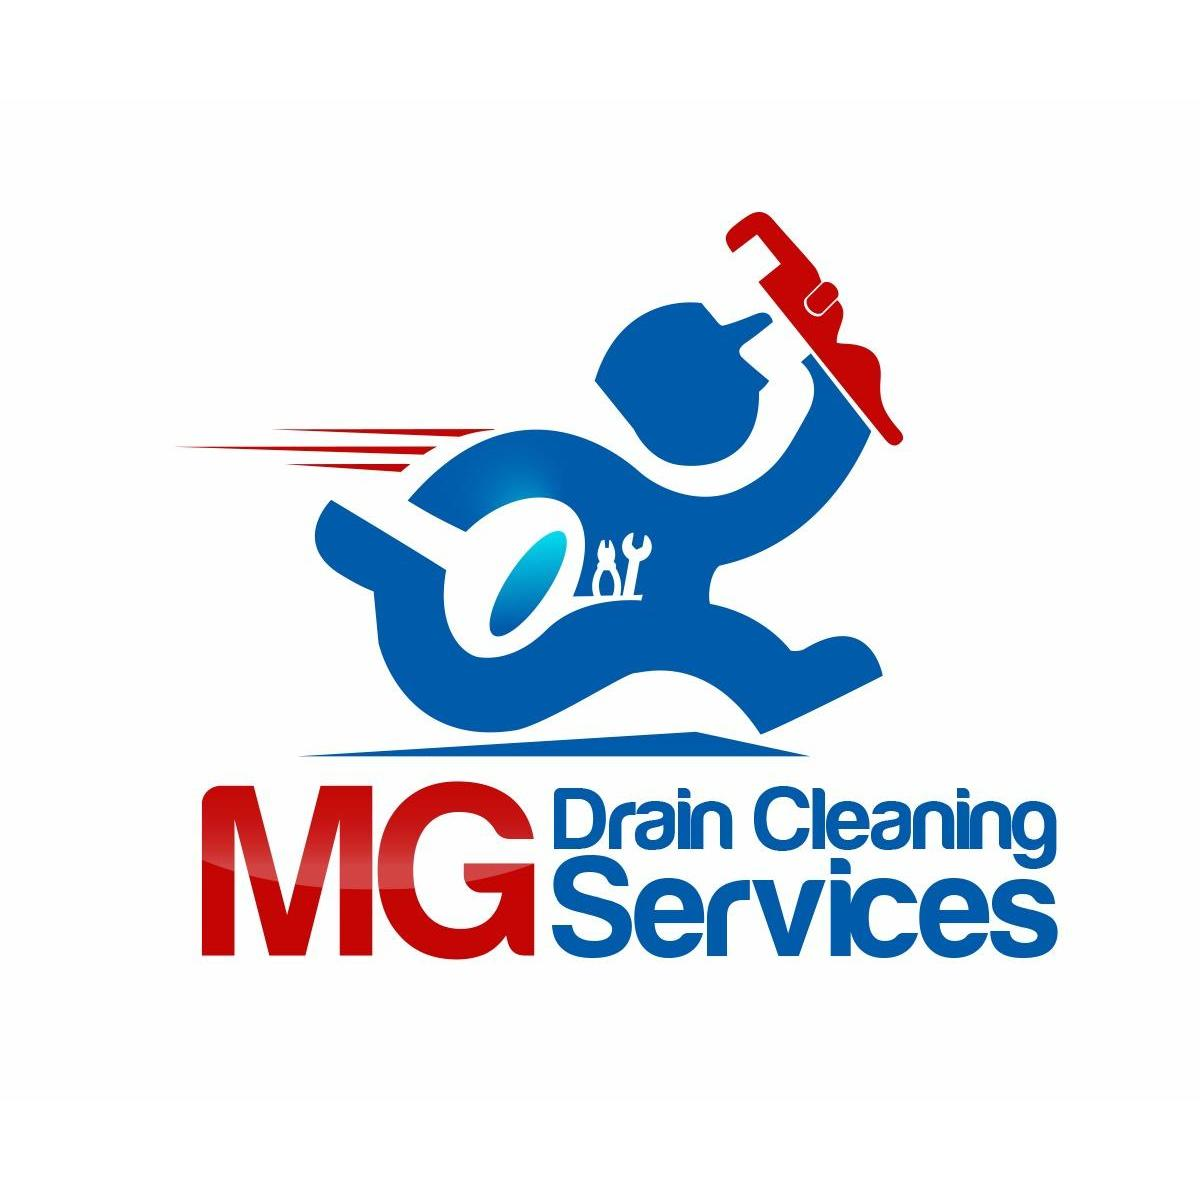 image of the MG Drain Cleaning Services